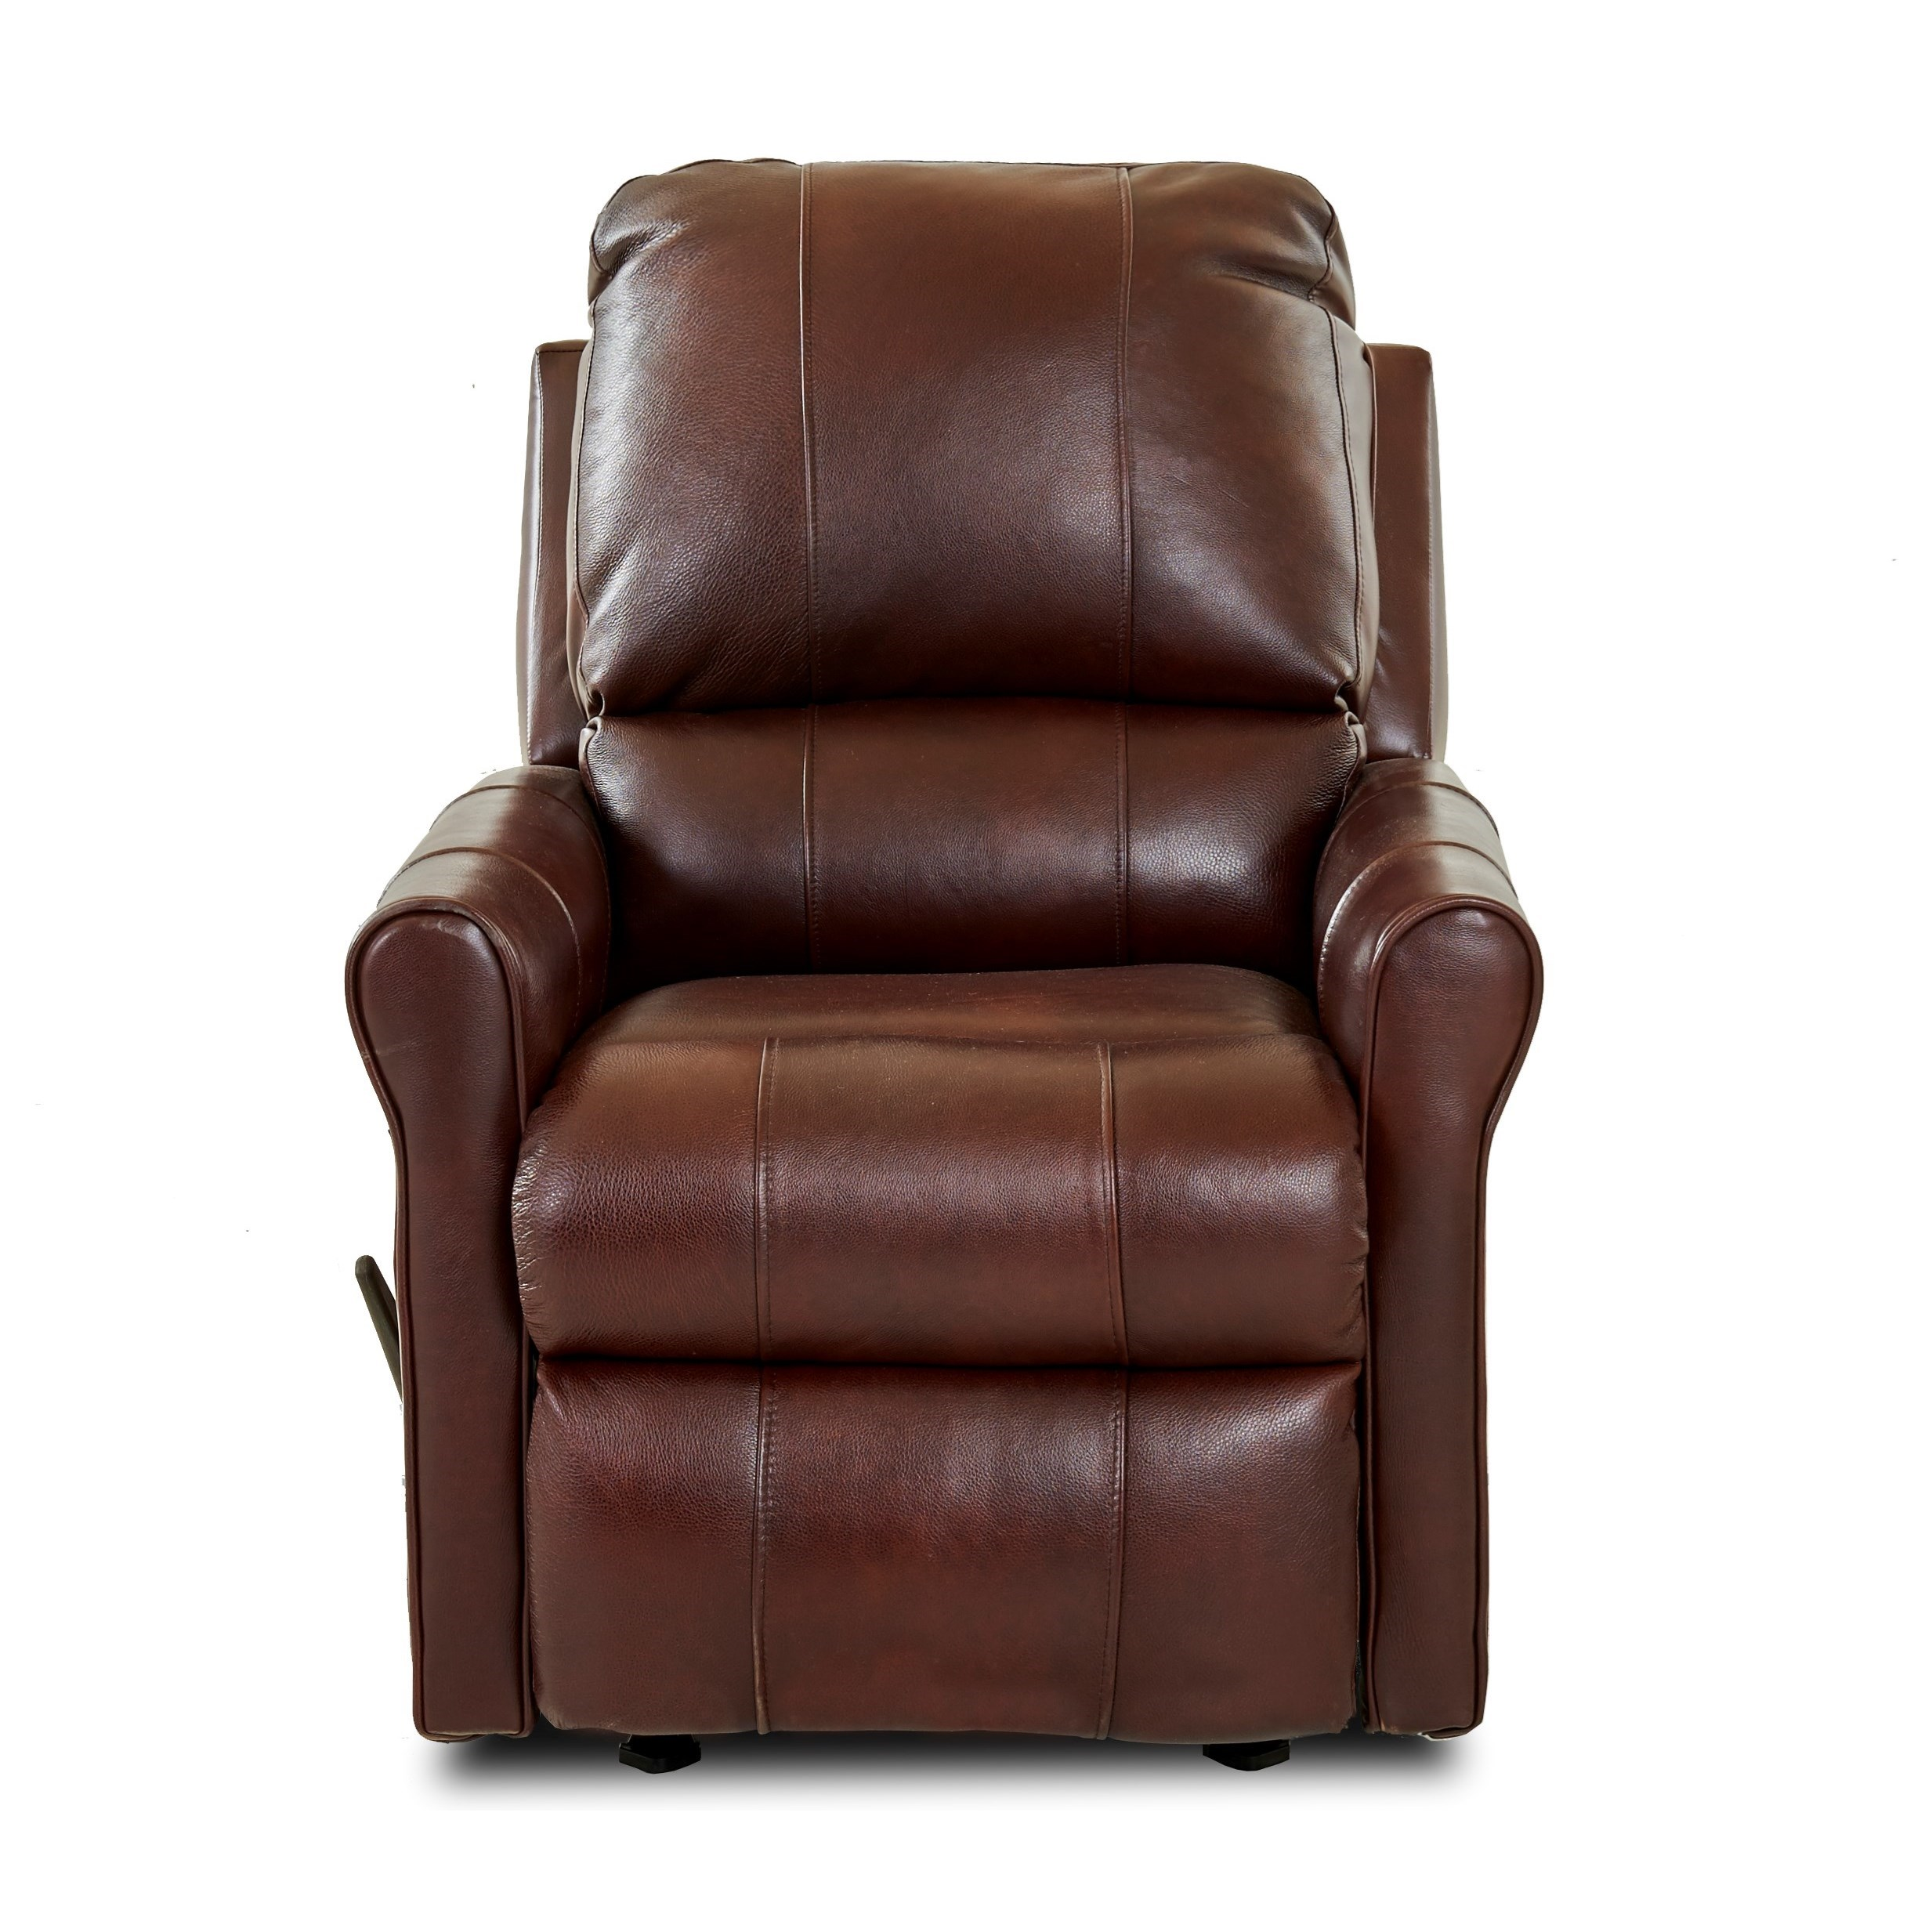 Baja Power Reclining Chair by Klaussner at Johnny Janosik